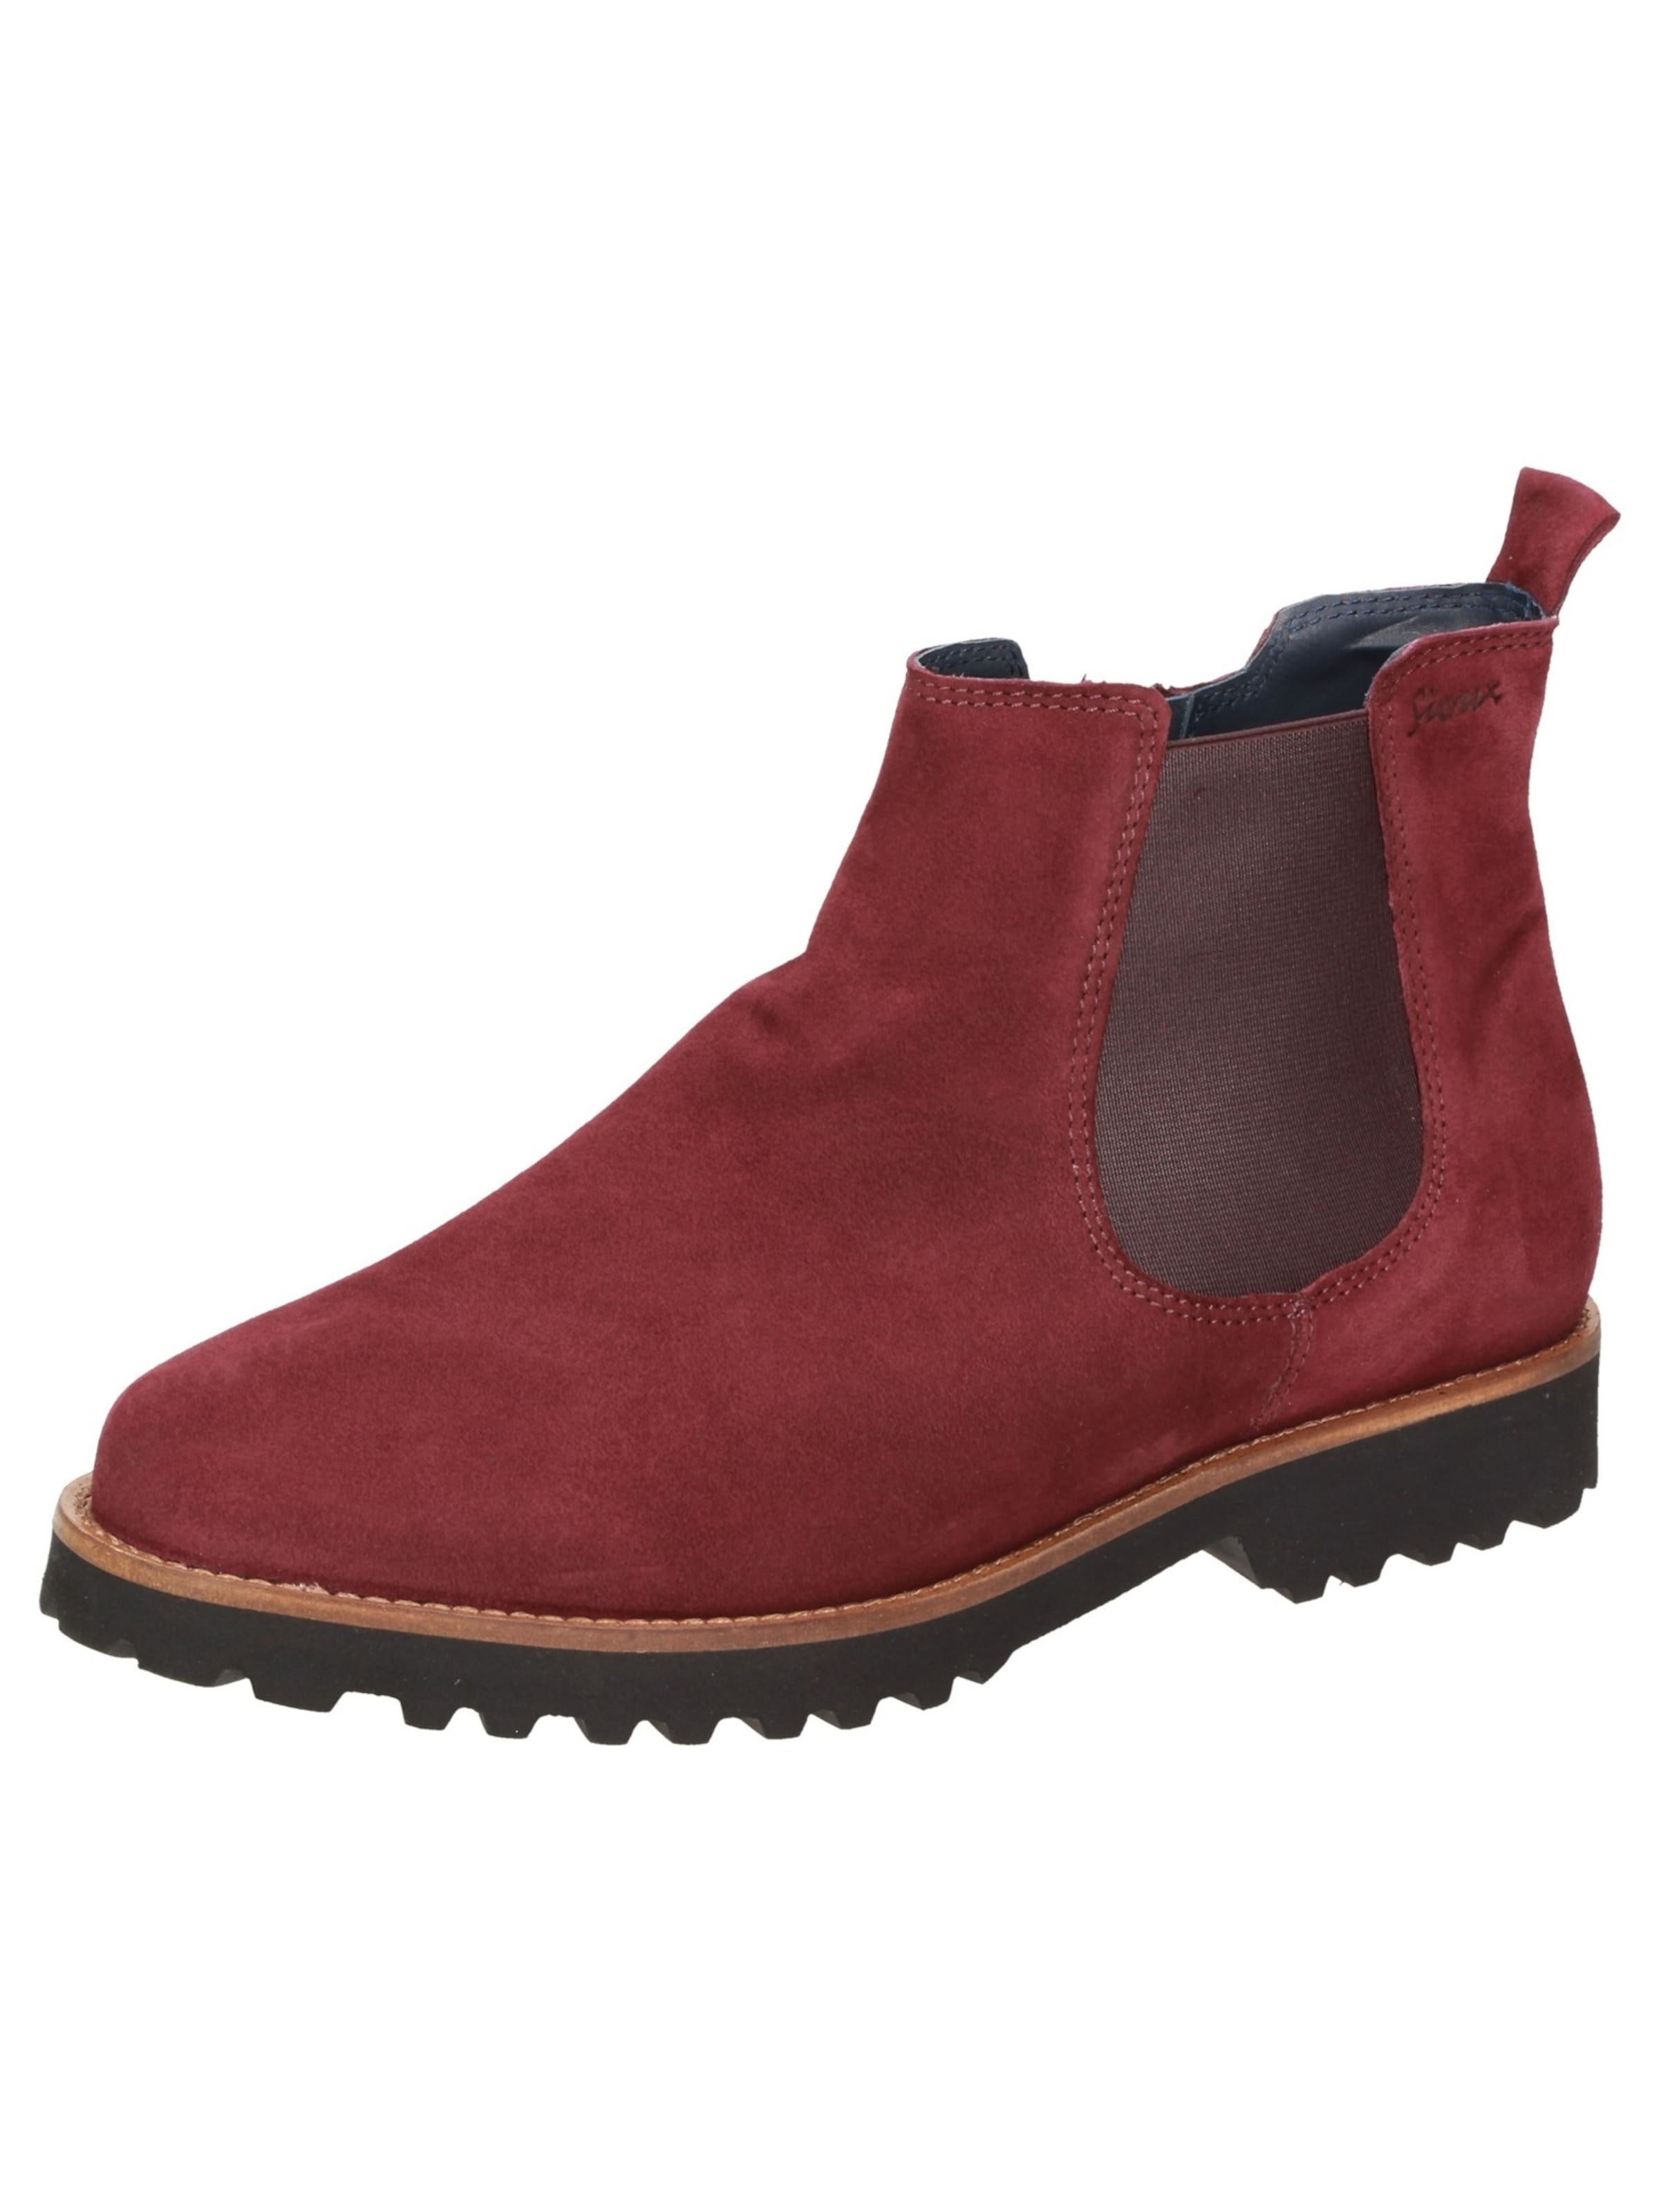 SIOUX Chelsea Stiefel 'Merotith' in rot